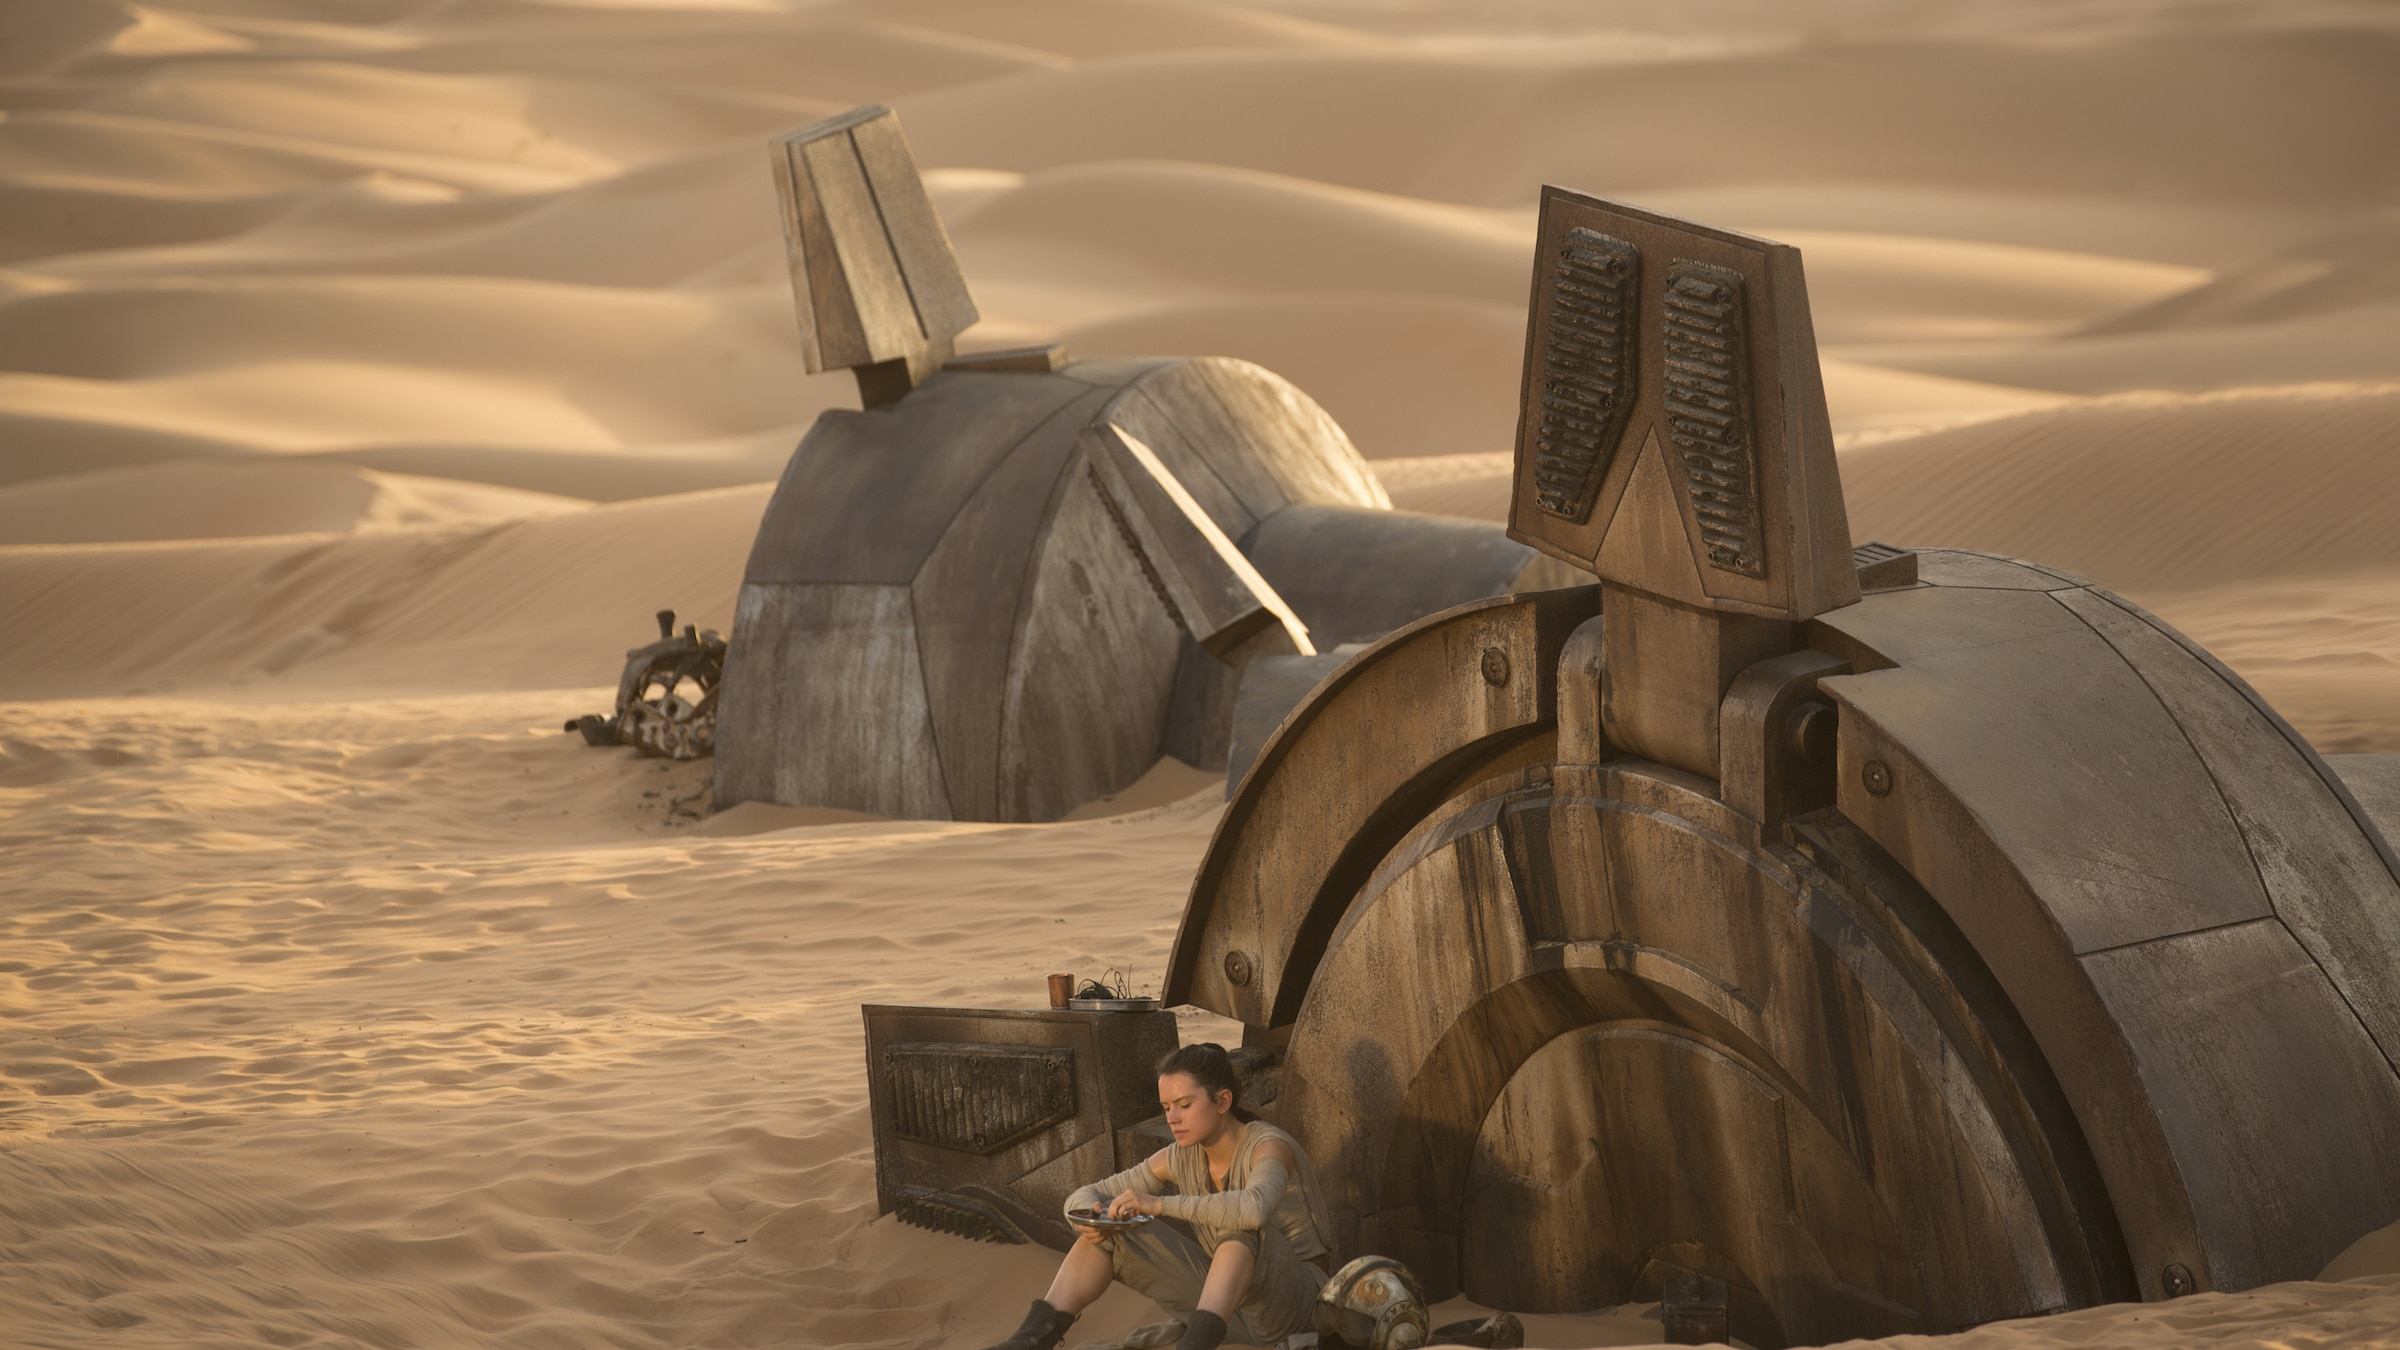 Imagining a Day of Scavenging on Jakku